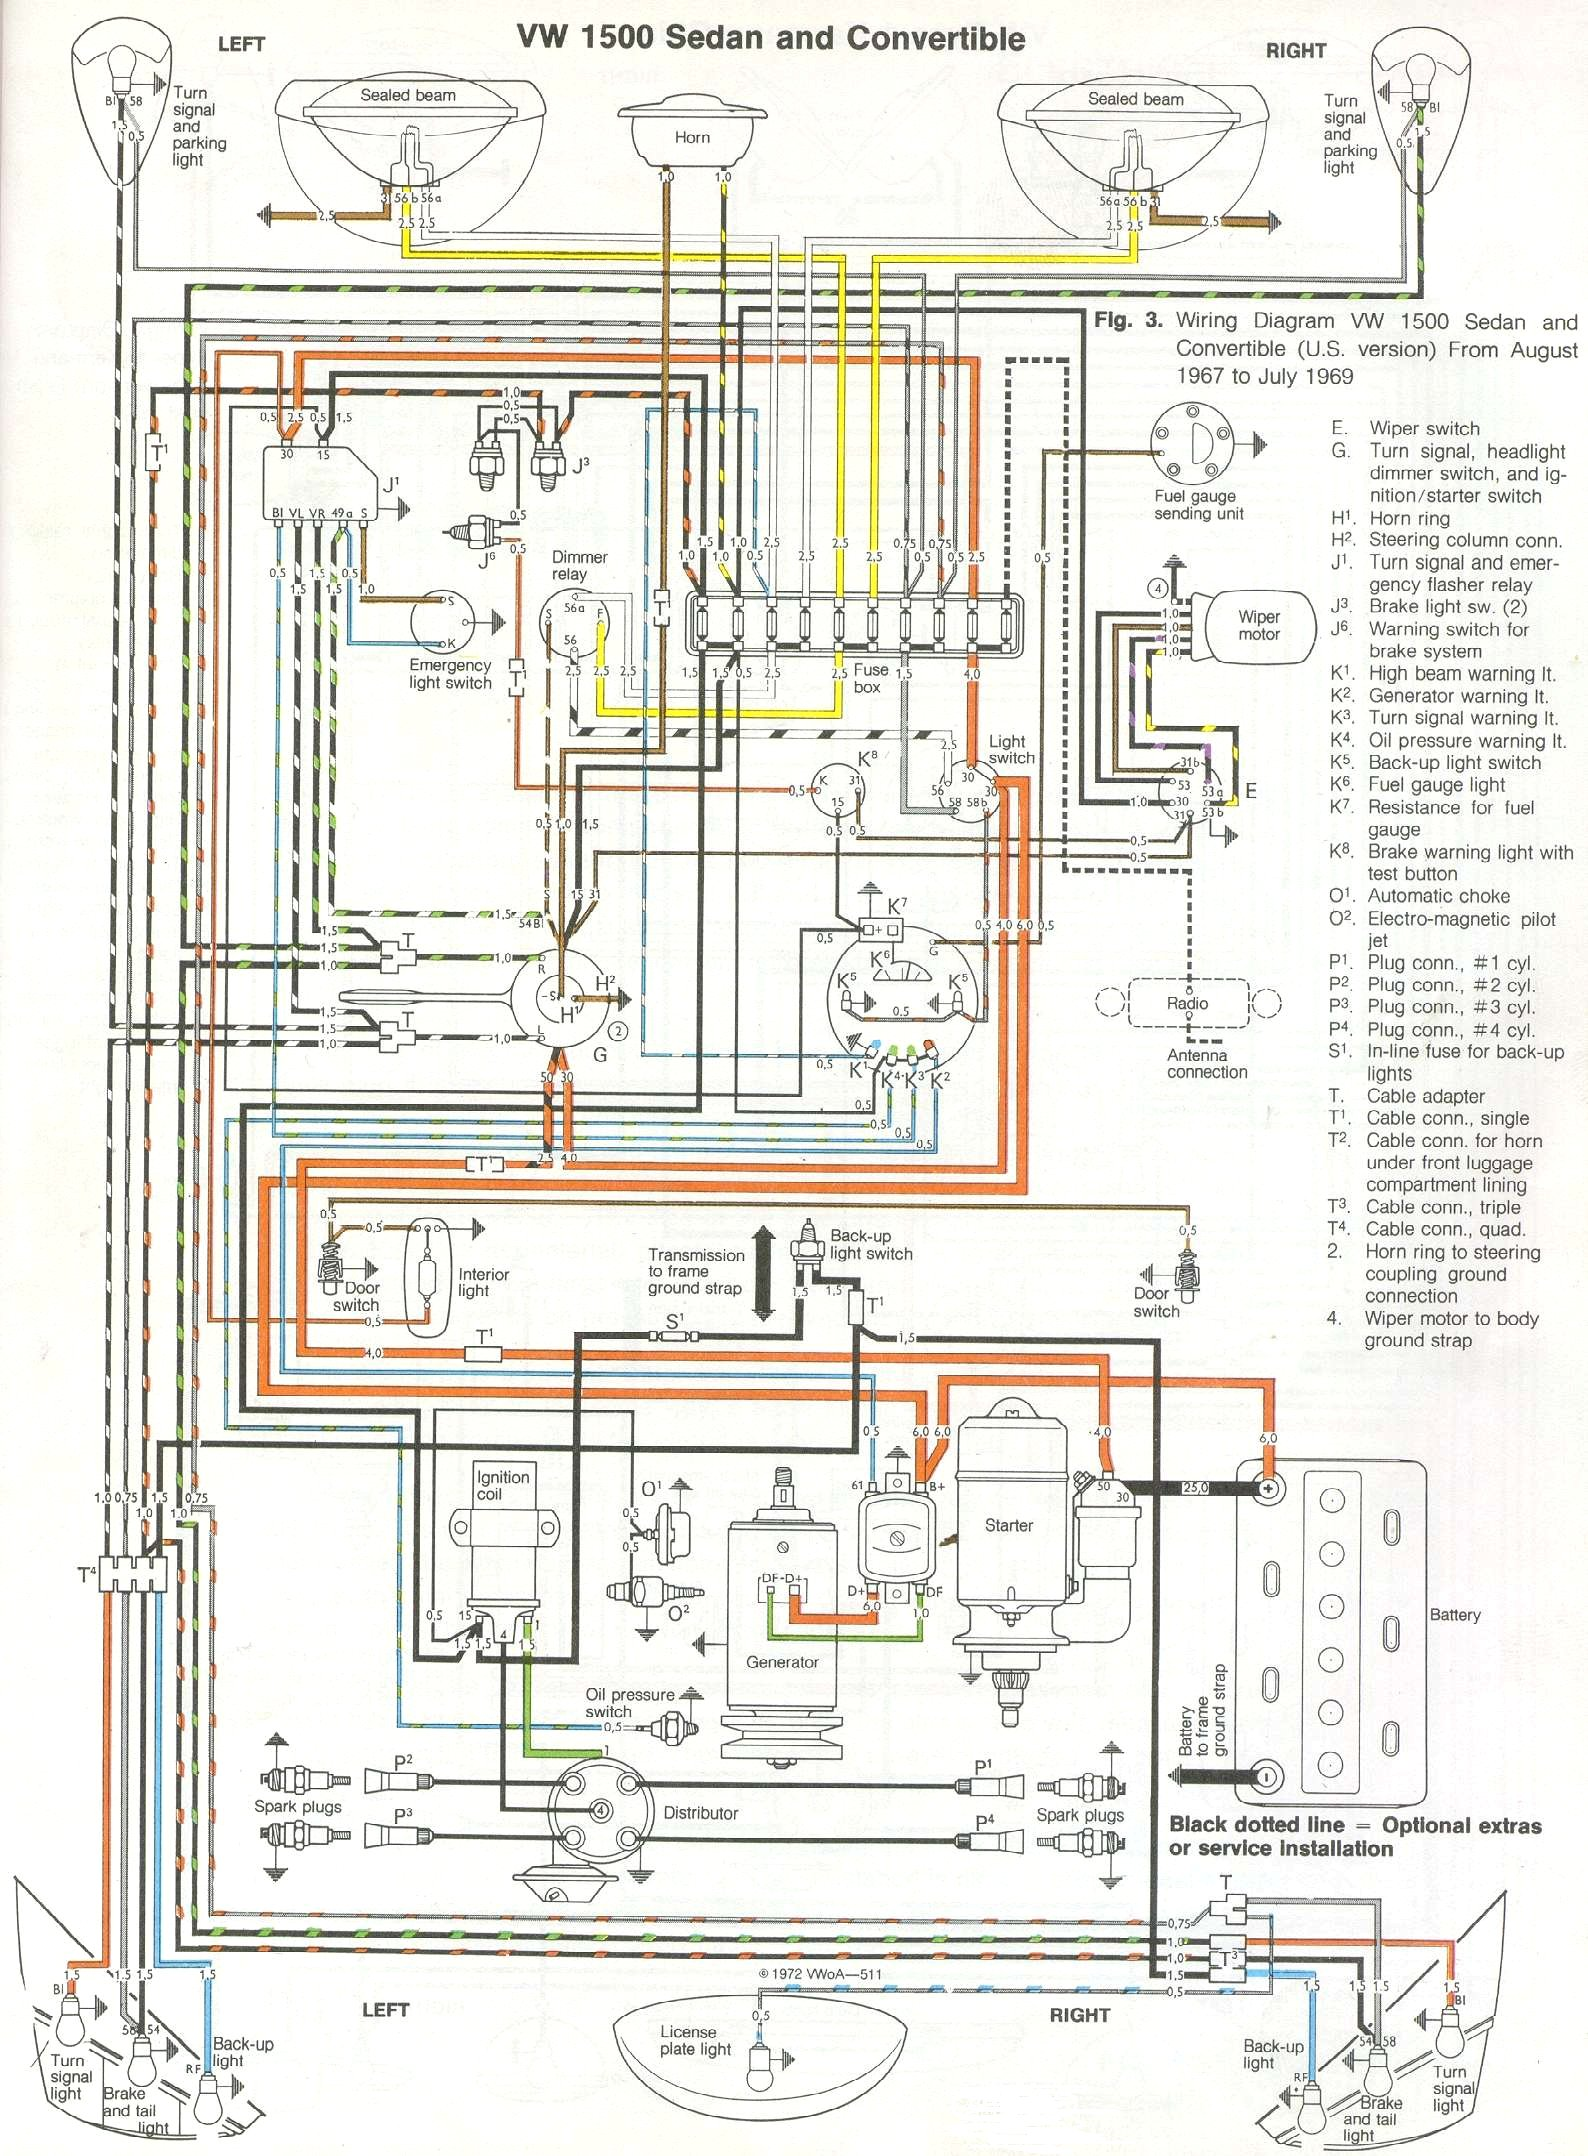 1969 vw 1600 wiring diagram detailed schematic diagrams rh 4rmotorsports com Volkswagen Super Beetle Wiring Diagram vw 1600 wiring diagram